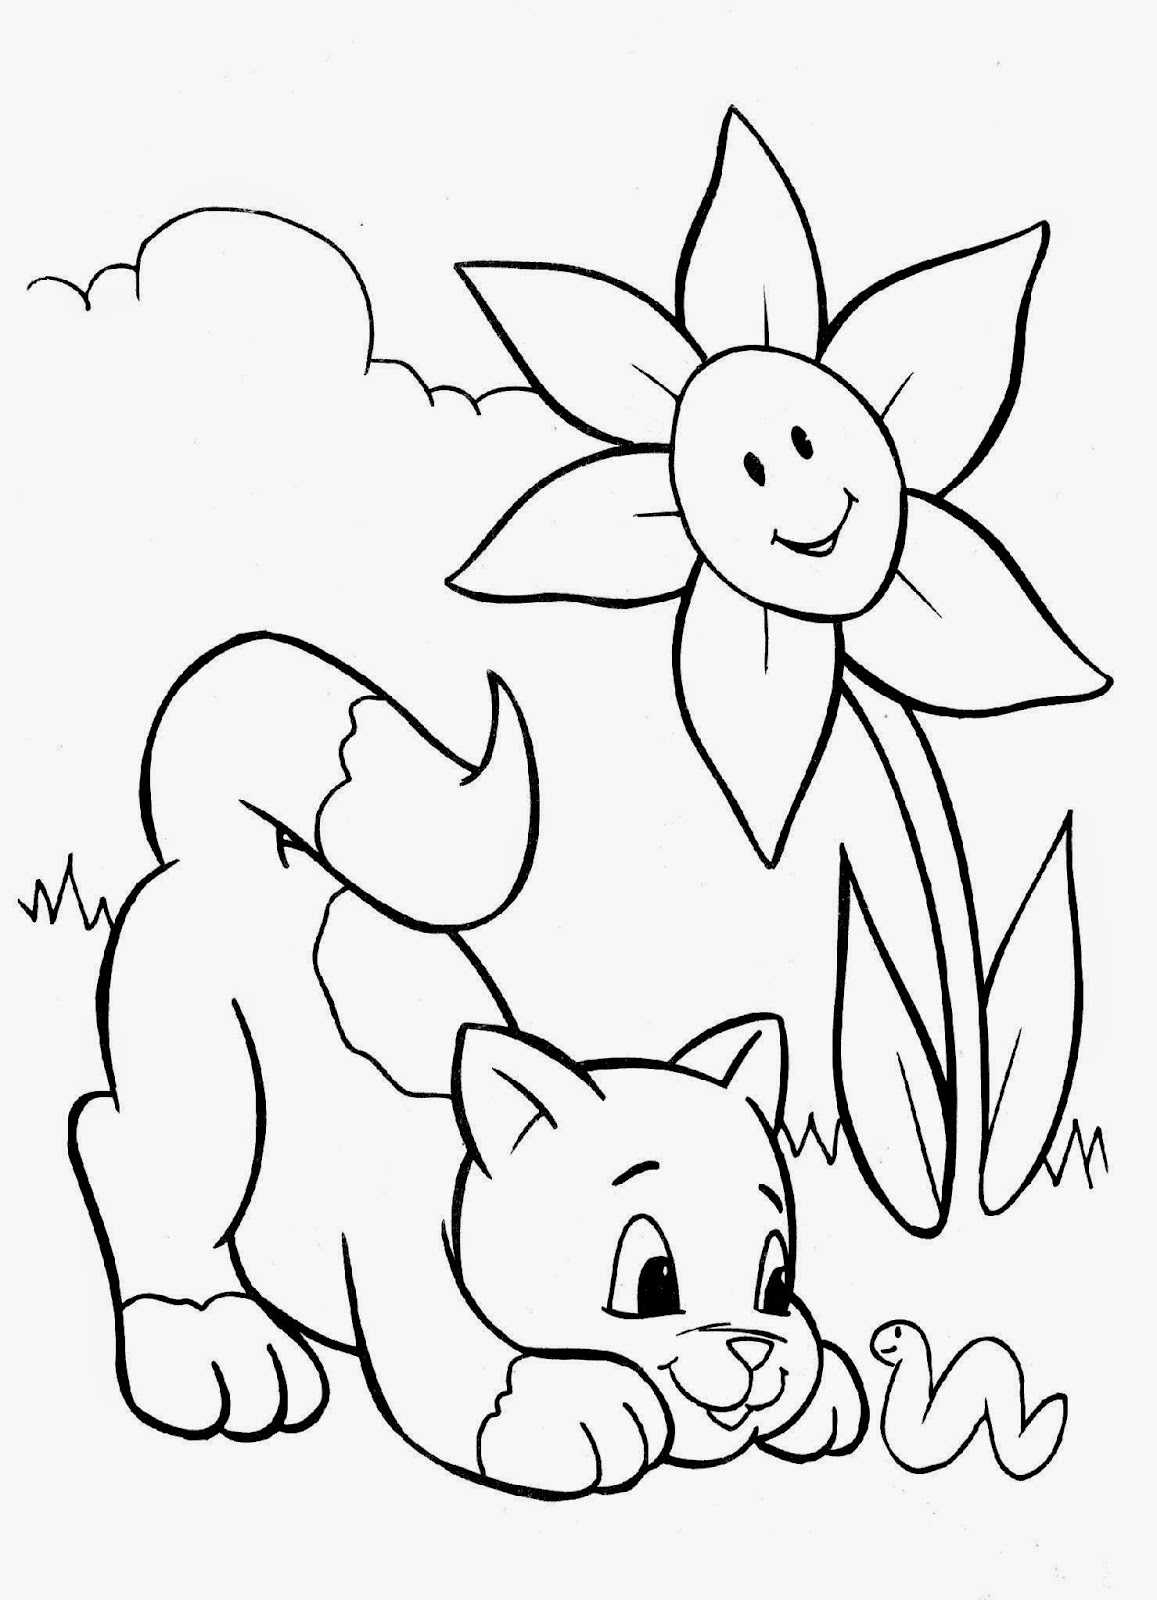 Crayola coloring sheets free coloring pictures for Ten coloring page